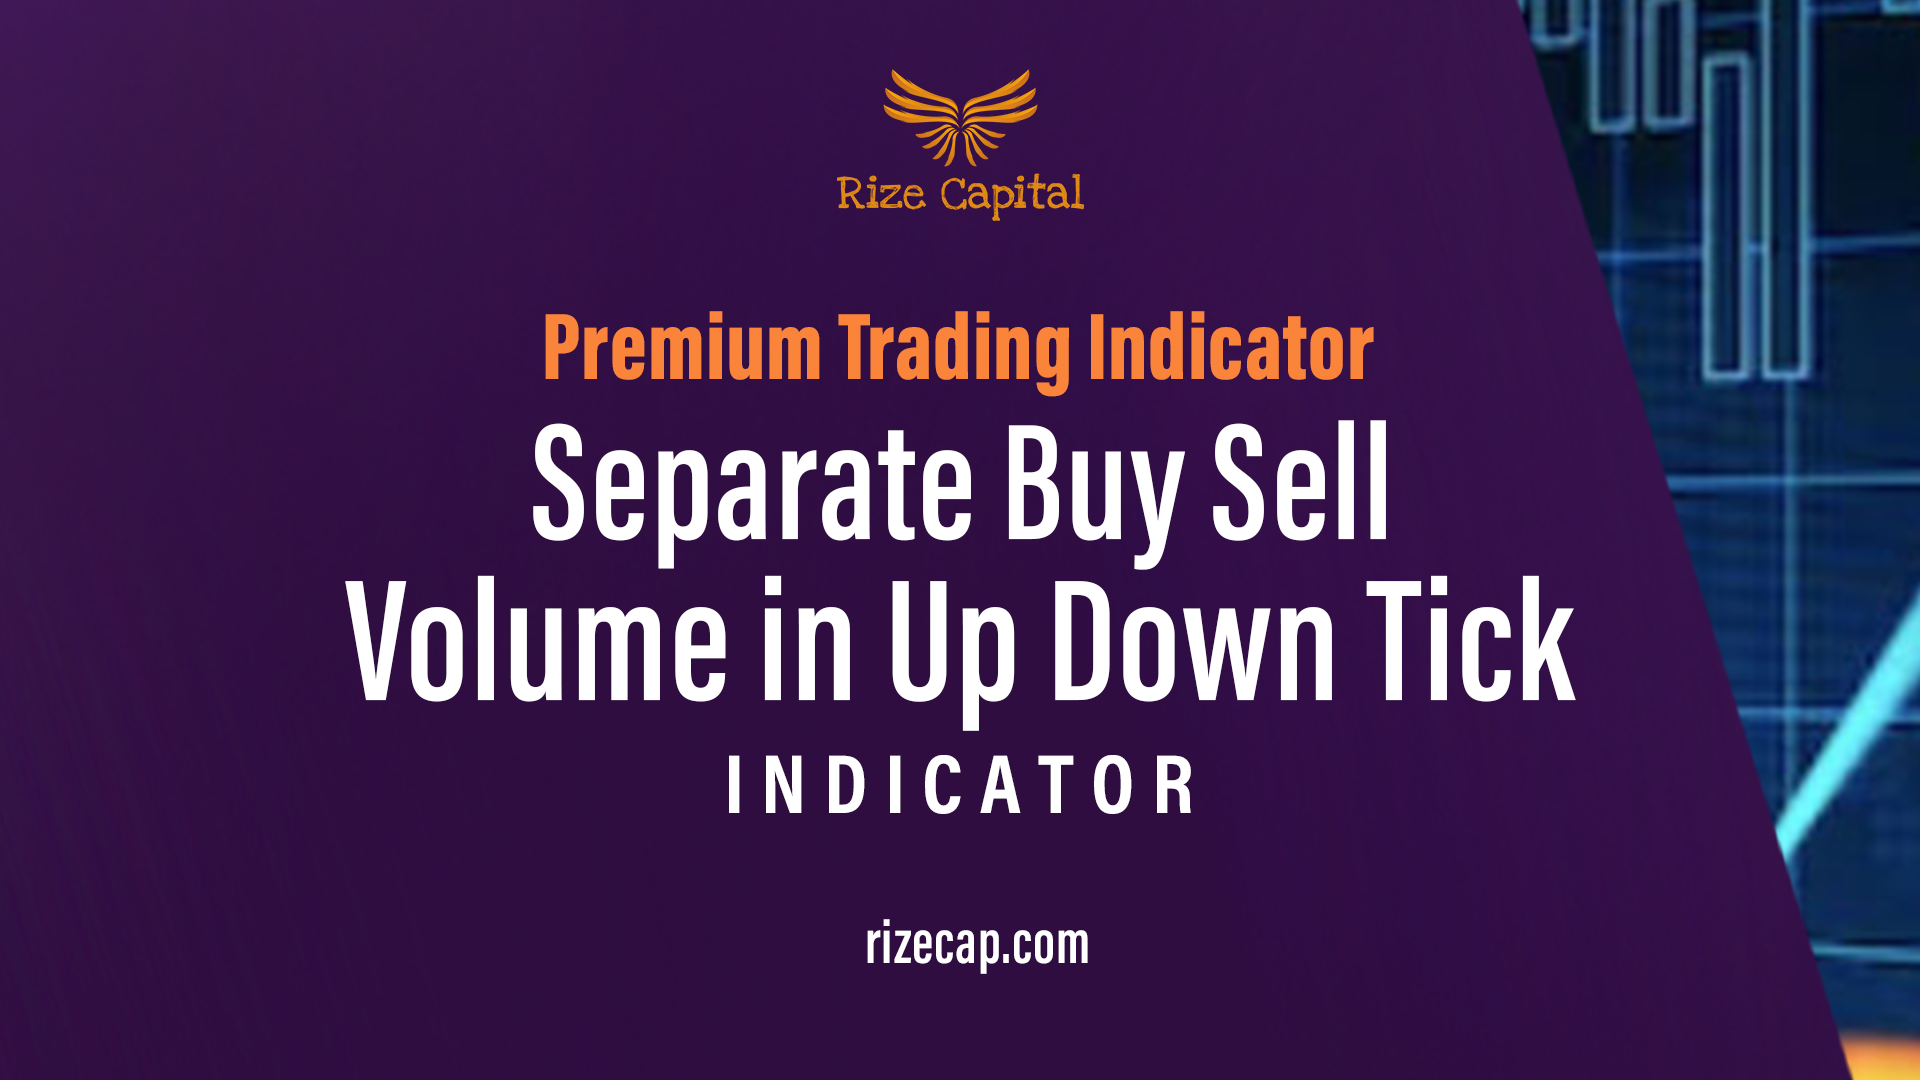 Separate Buy Sell Volume in Up Down Tick Premium Indicator